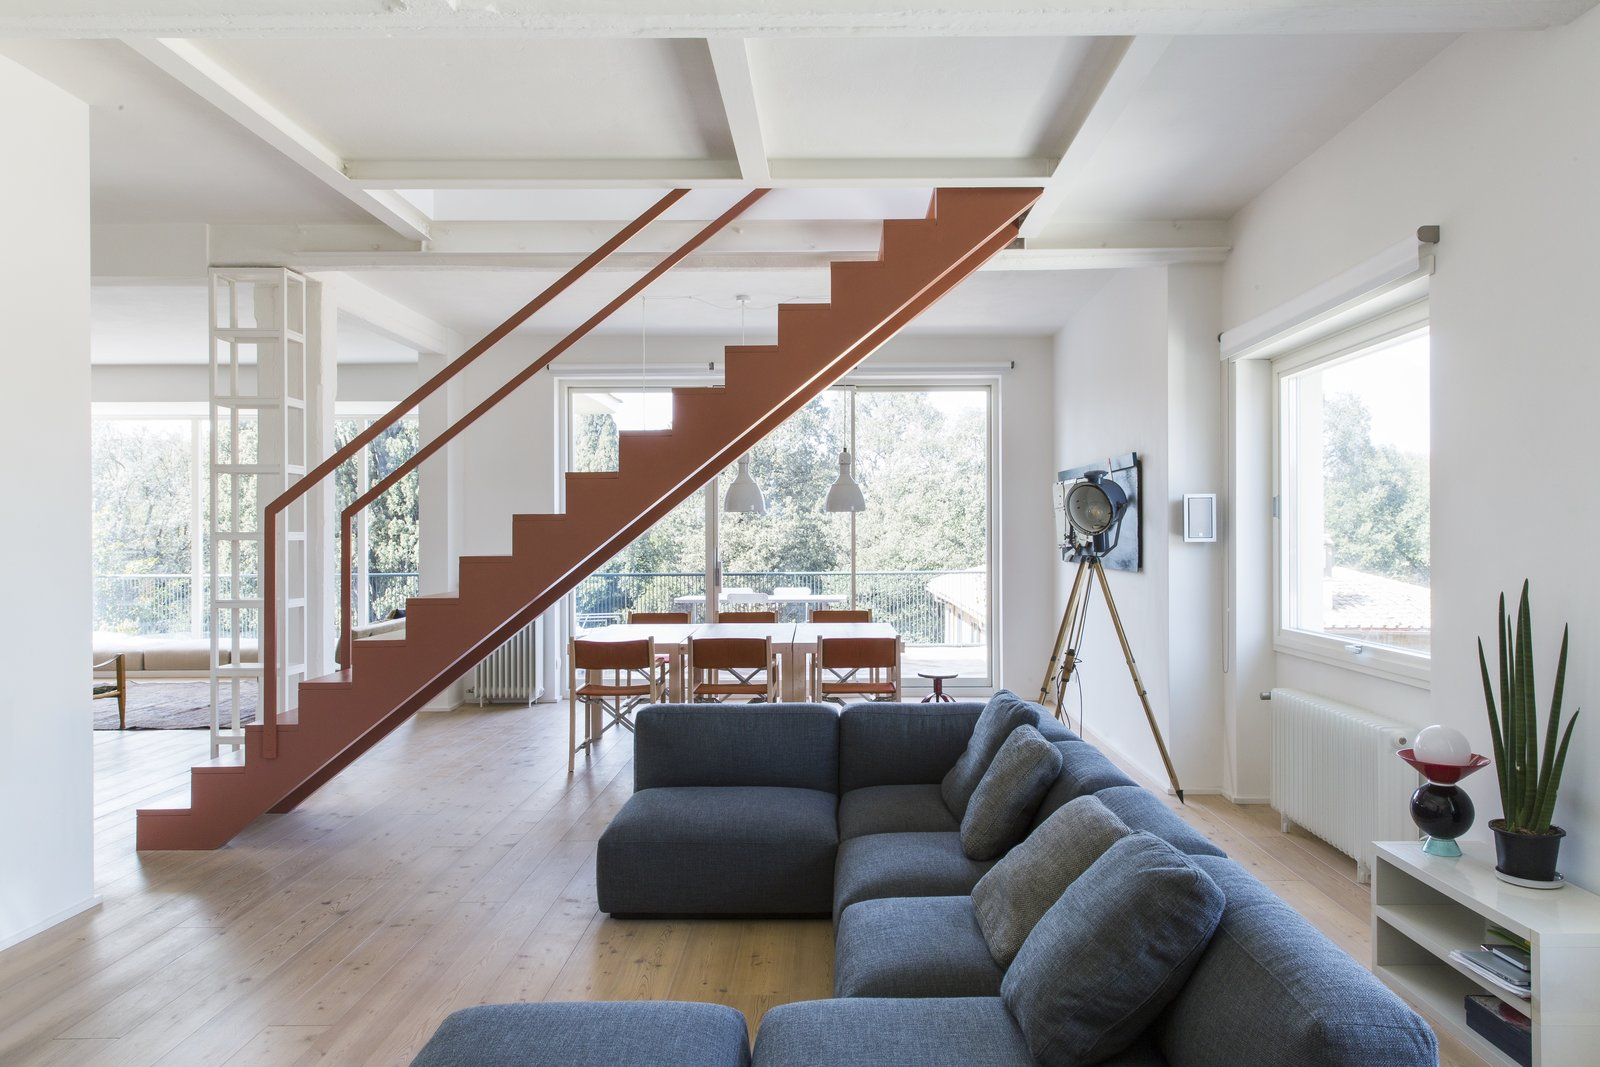 A pink, sculptural staircase appears to float in the middle of the common area, demarcating the boundary between the living and dining areas, and connecting the two levels.